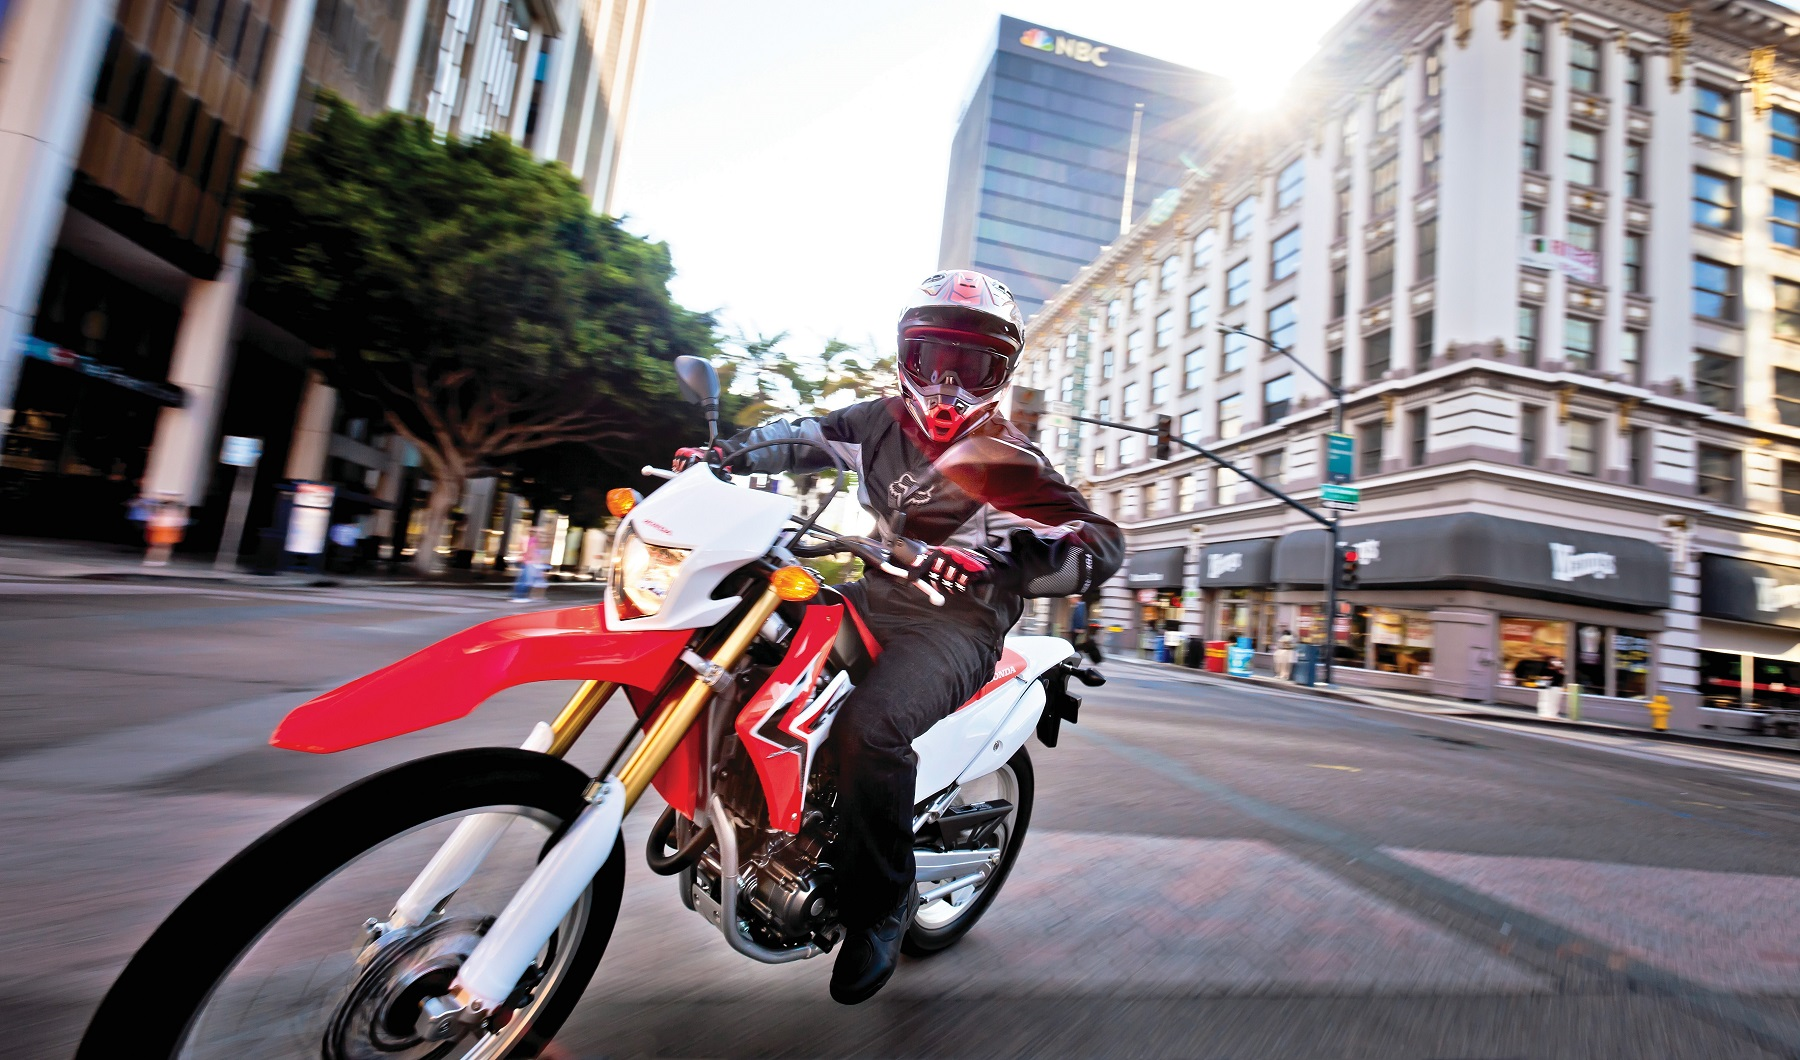 Off Lease Auto >> Honda's Dual-Sport Bike On and Off-Road - 2-Wheeling Today ...